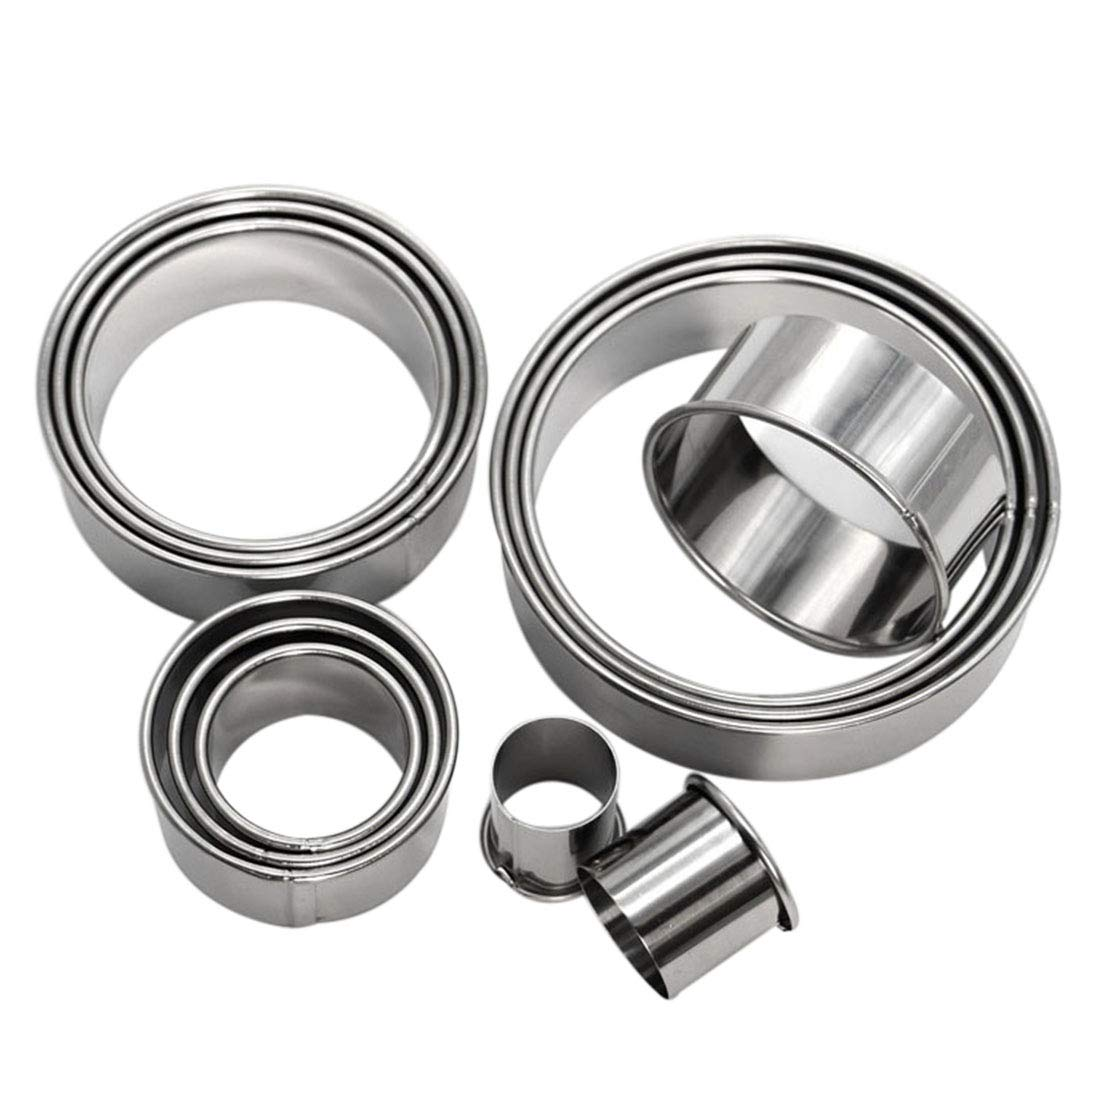 Enerhu 12PCS Adjustable Cake Ring Mold Stainless Steel Mousse Mold for Cooker